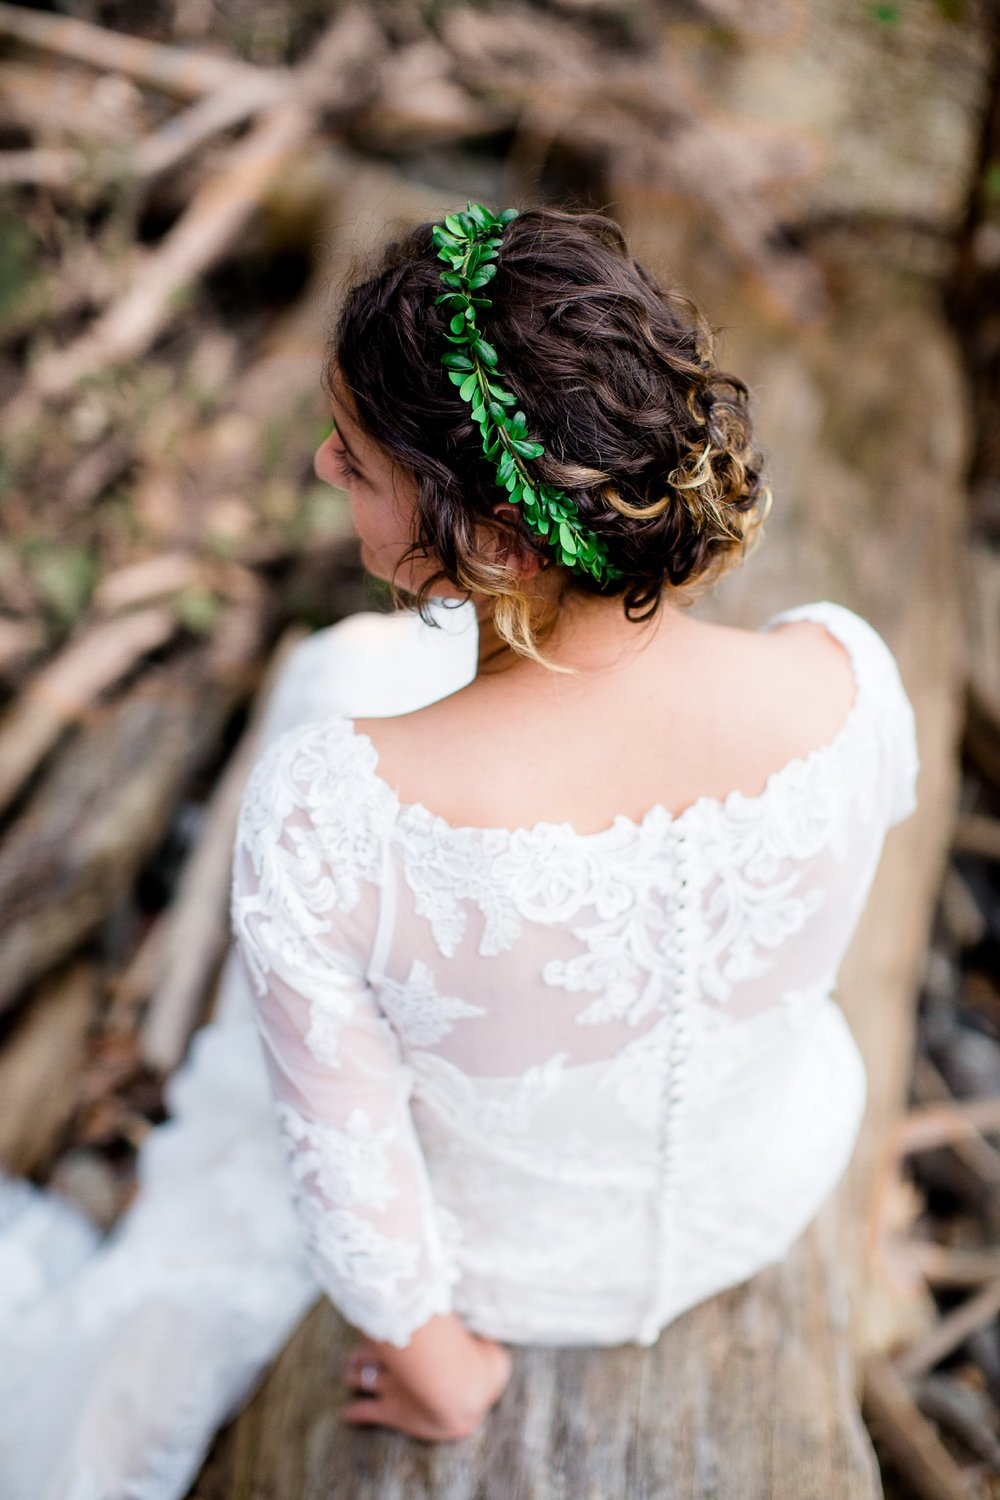 bride in lace dress with her back to the camera with a green garland in her hair